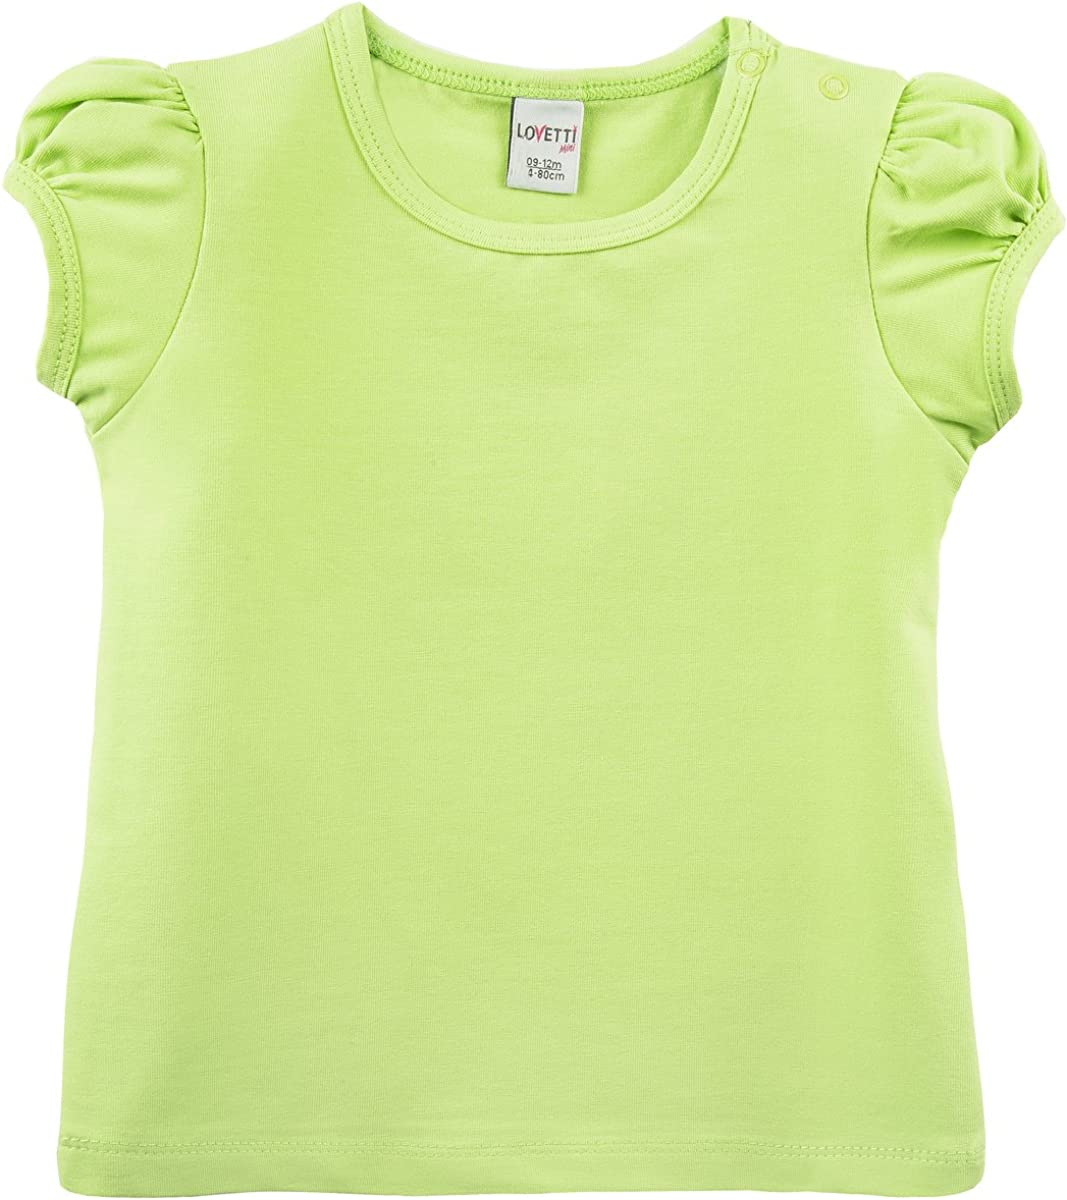 Lovetti Baby Girls' Basic Short Puff Sleeve Round Neck T-Shirt